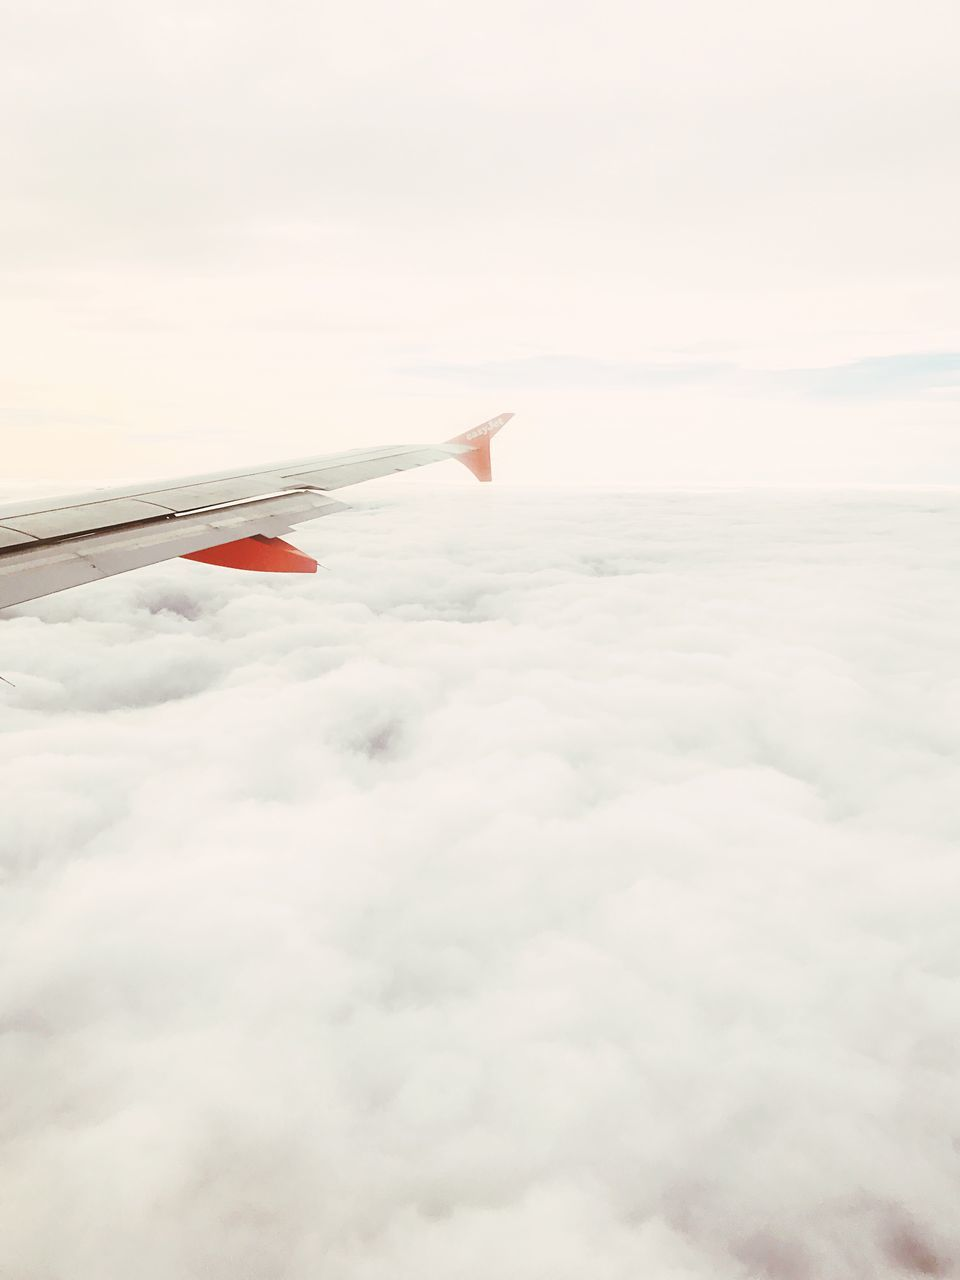 airplane, cloud - sky, sky, transportation, airplane wing, journey, aerial view, cloudscape, travel, air vehicle, aircraft wing, flying, nature, no people, mid-air, mode of transport, beauty in nature, outdoors, scenics, day, vehicle part